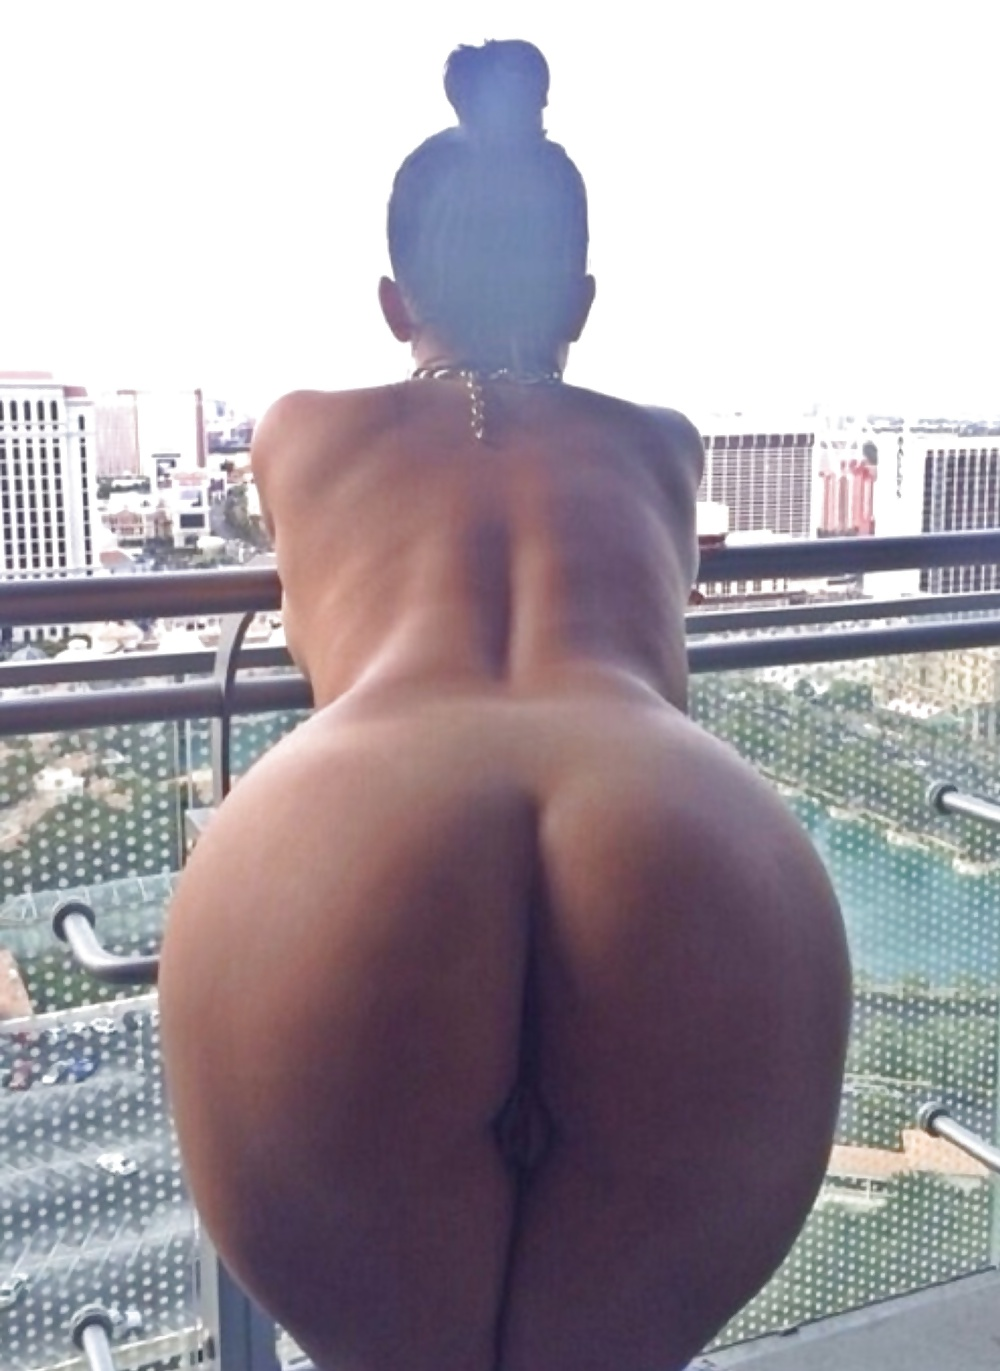 Lauren brooke ass celebrity big ass celebrity posing hot famous tits